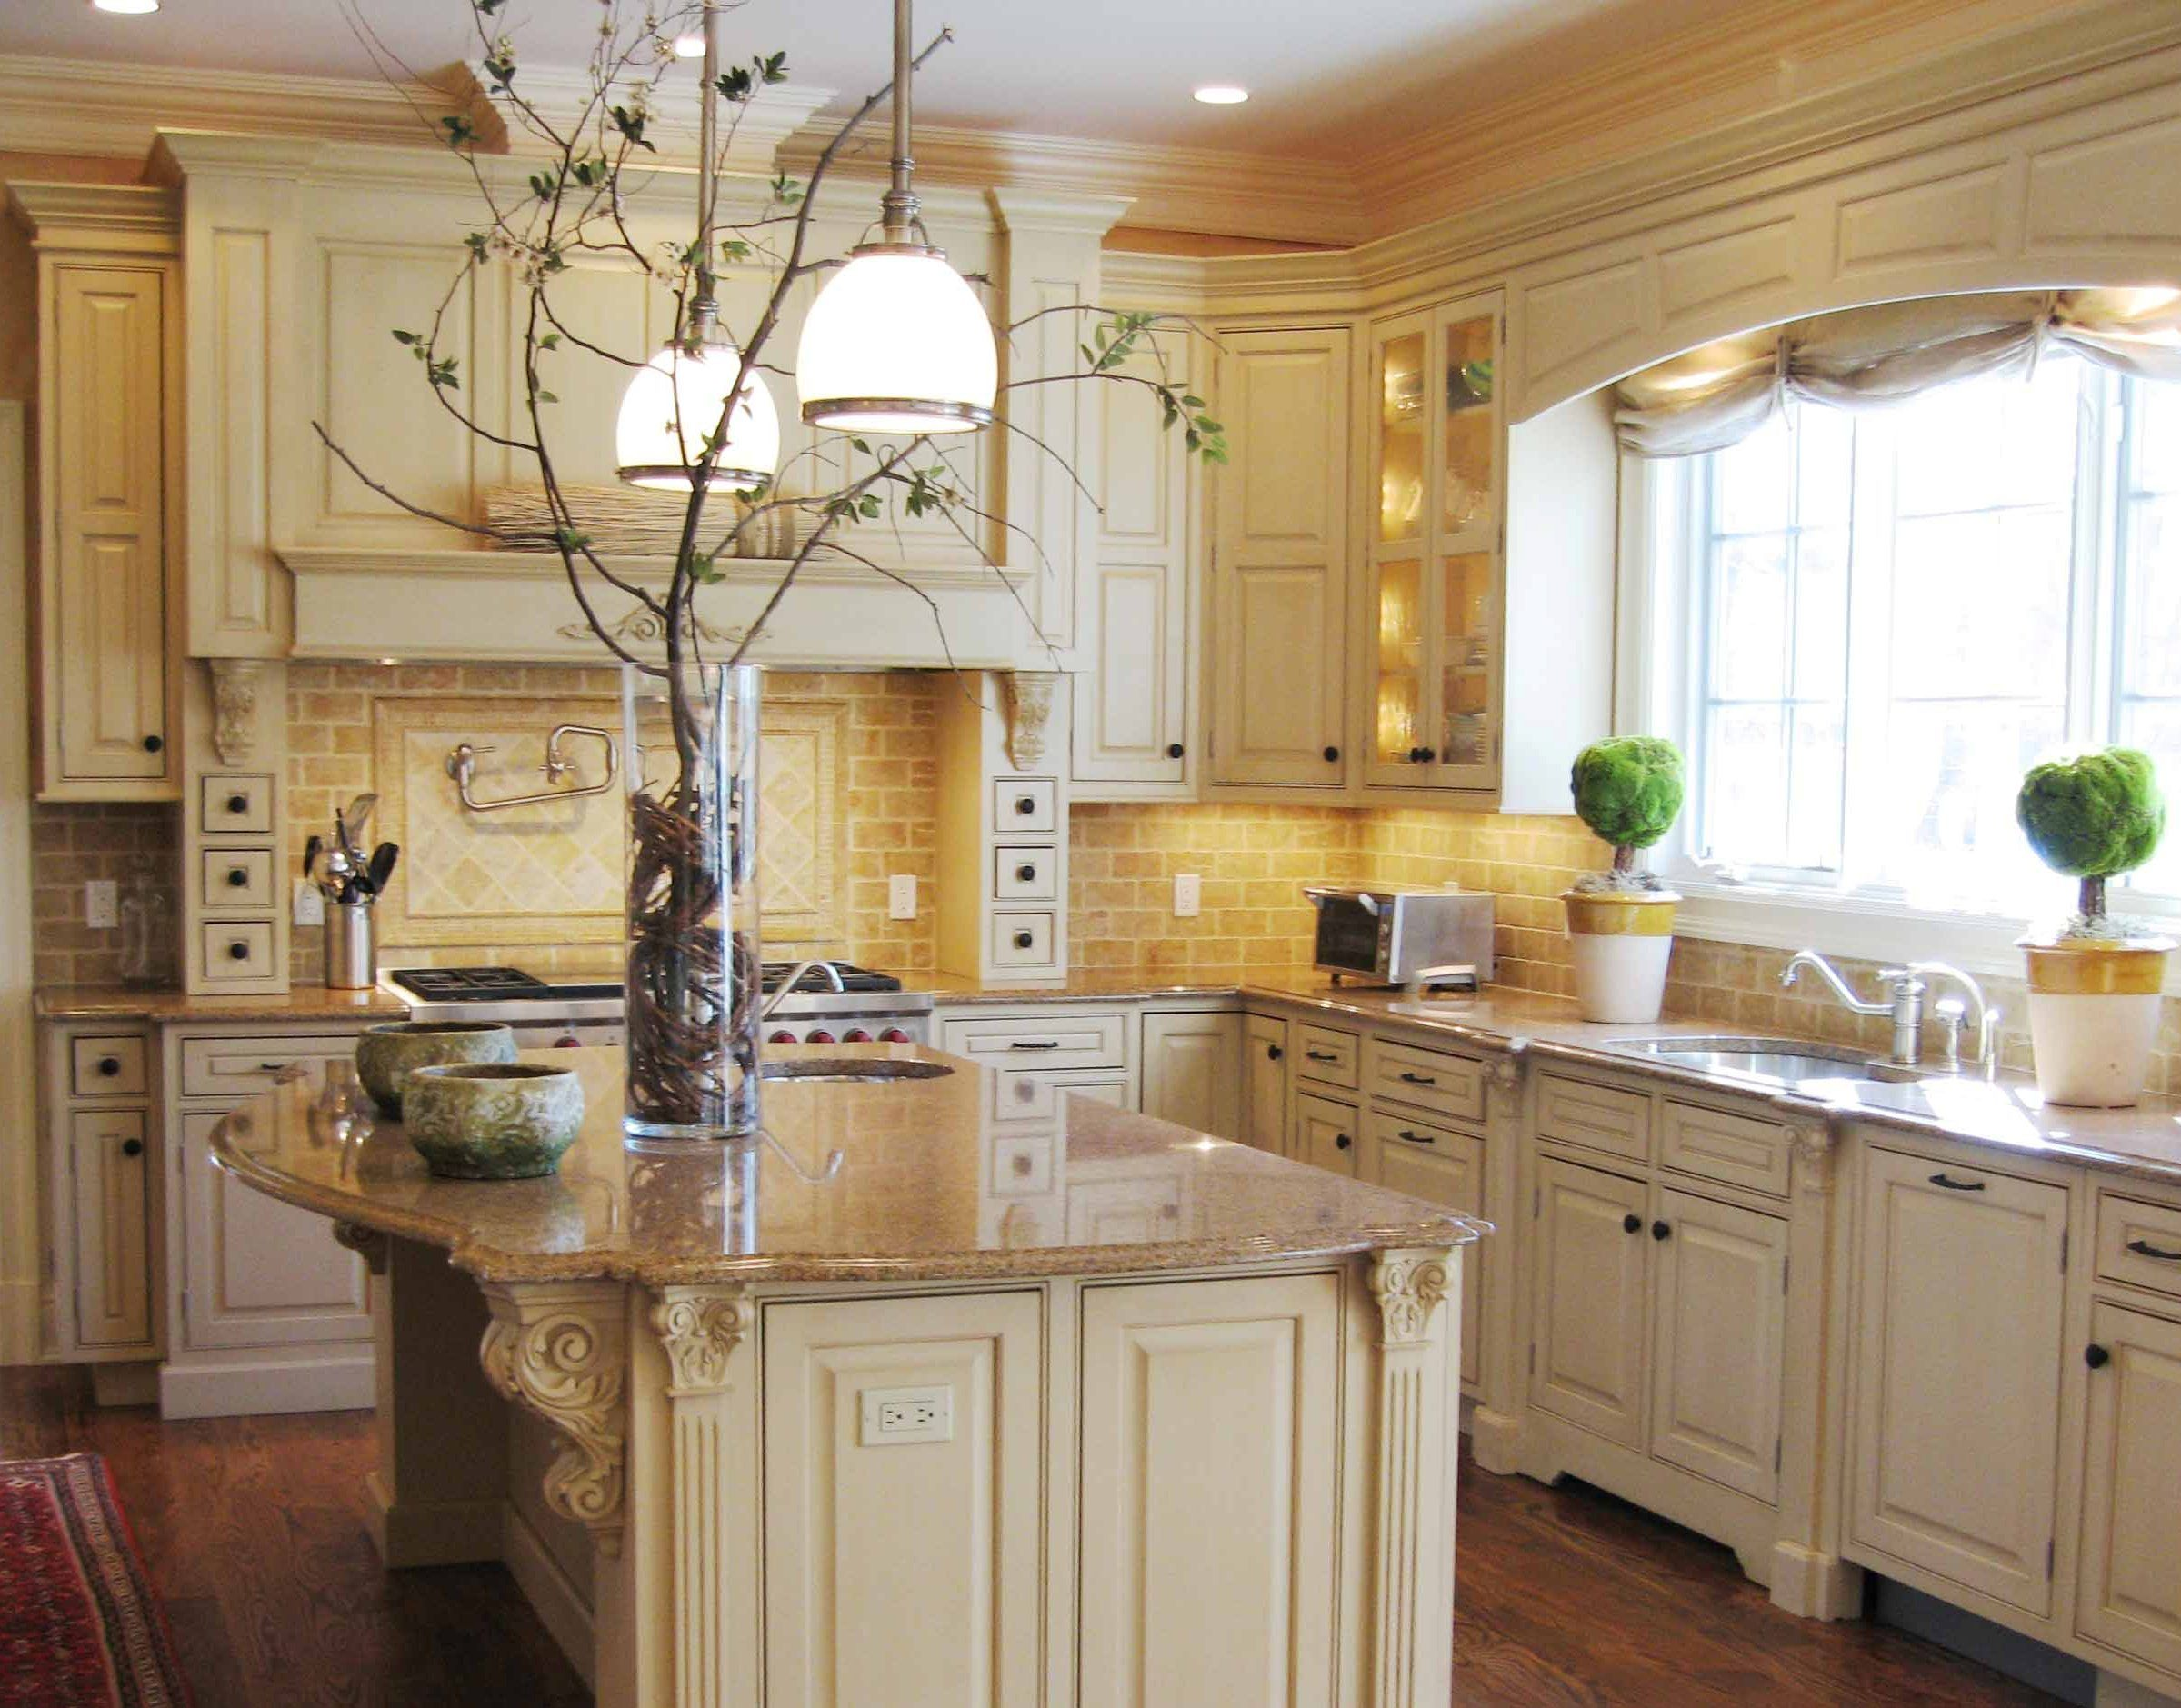 Tuscan Kitchen Design Tuscan Kitchen Design Style Highly Features Earthy Paint Color